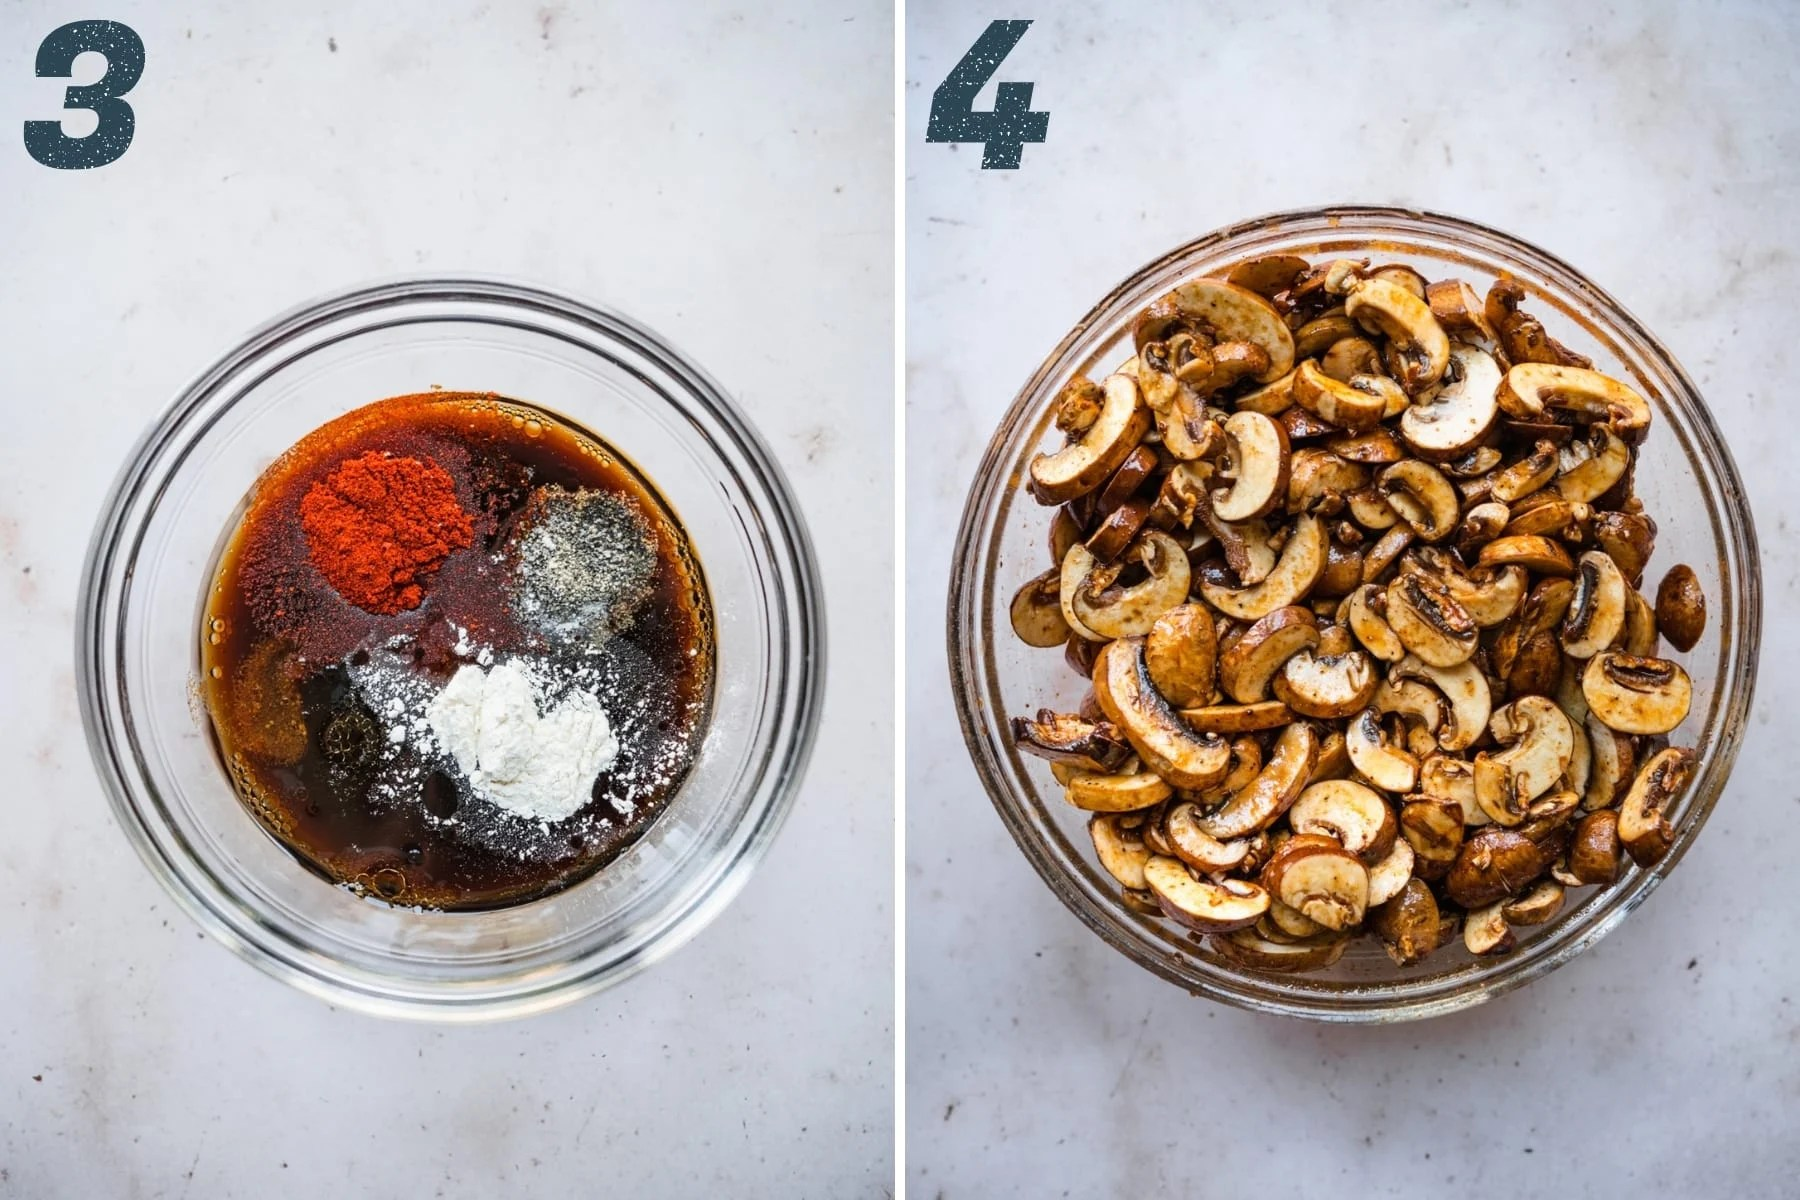 on the left: ingredients for soy sauce marinade for mushroom bacon. On the right: mushrooms tossed in marinade in bowl.